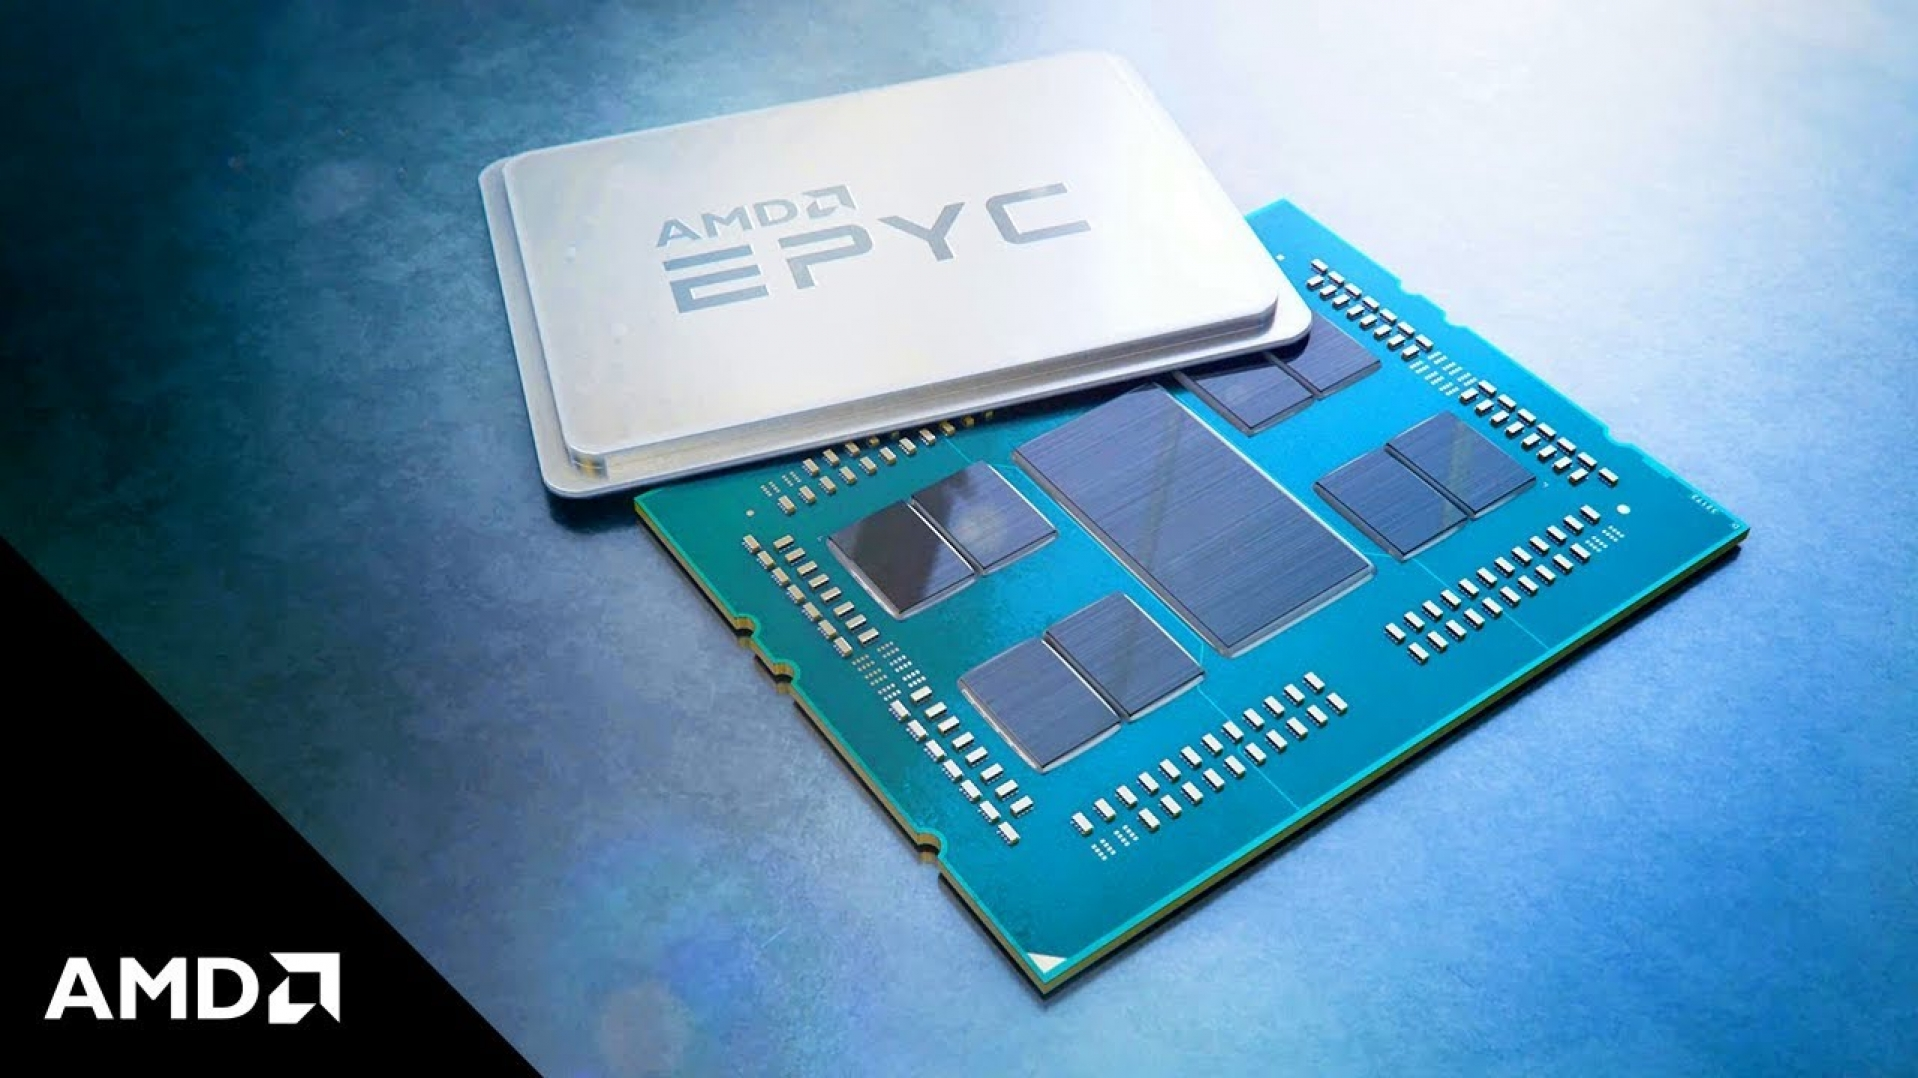 AMD will release its Epyc 'Rome' 7nm CPU soon with up to 64 cores